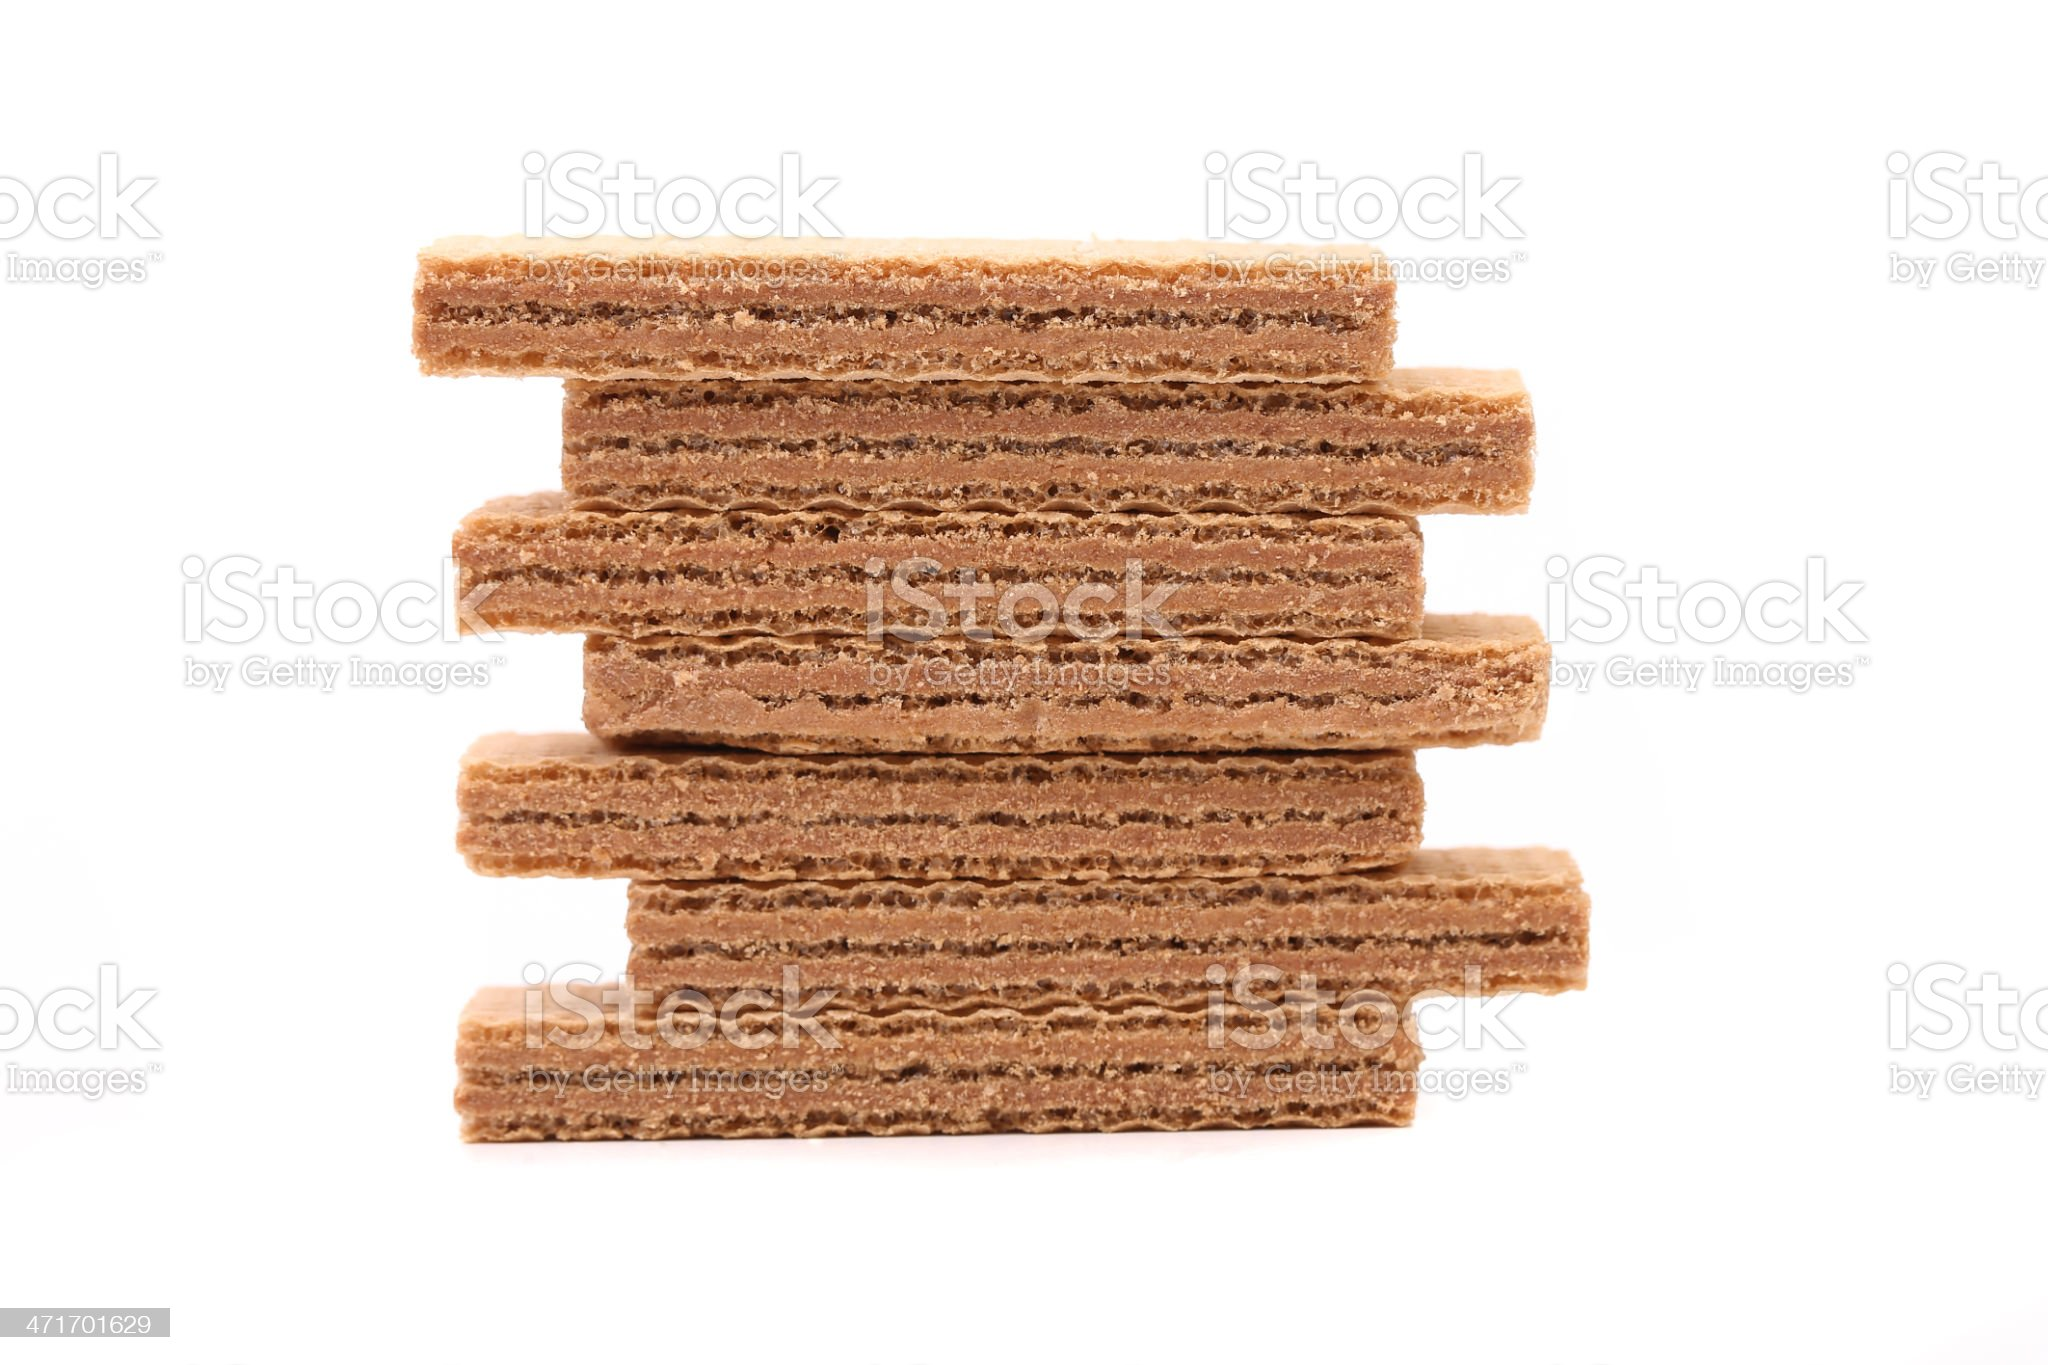 Stake of wafers with chocolate royalty-free stock photo